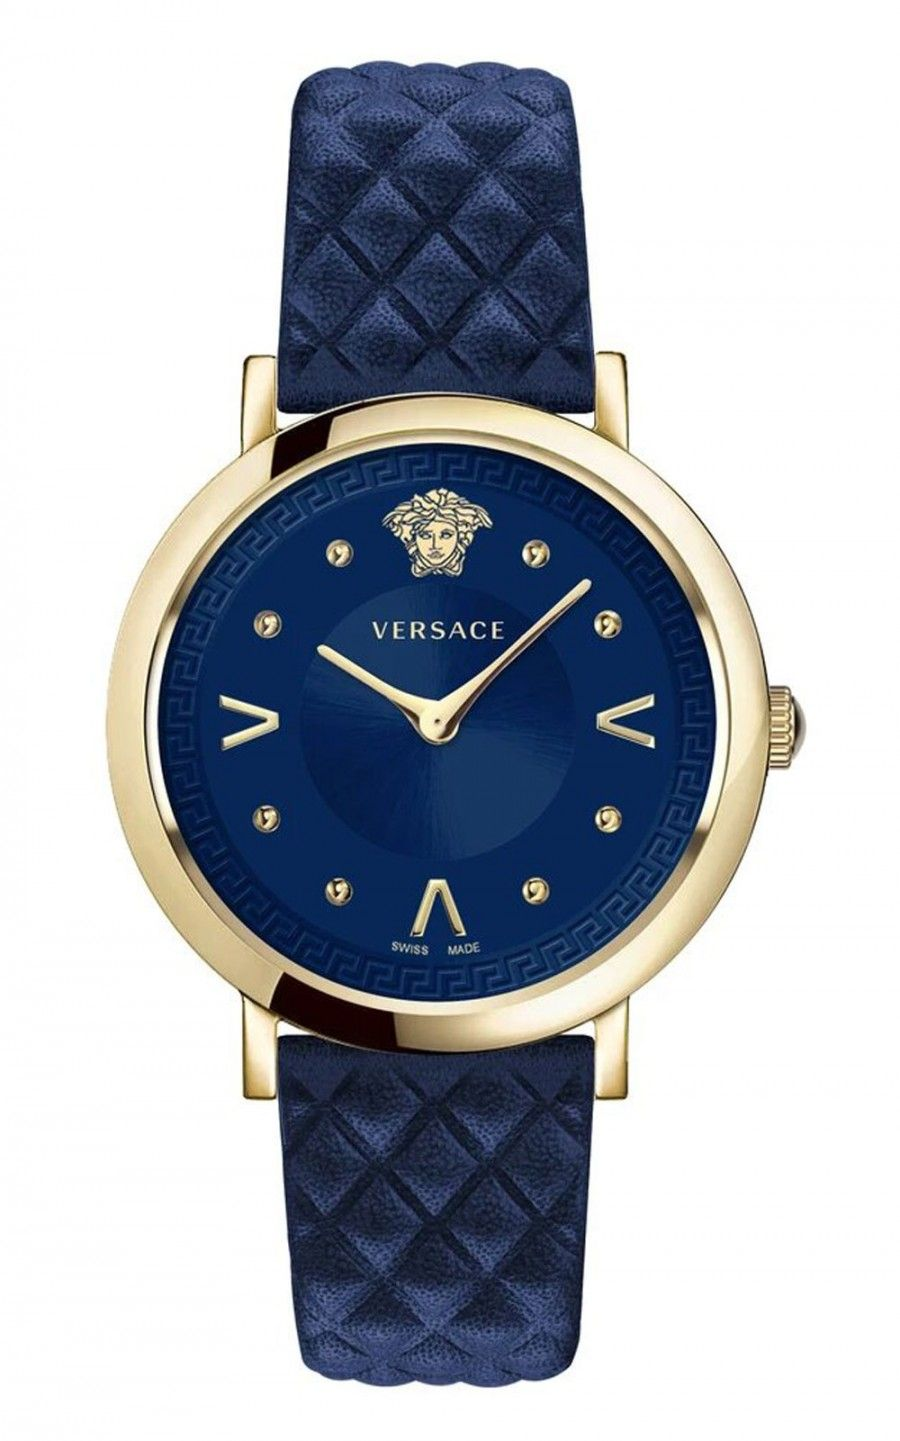 Hình Đồng hồ Versace Pop Chic Lady Watch, 36mm vevd00319